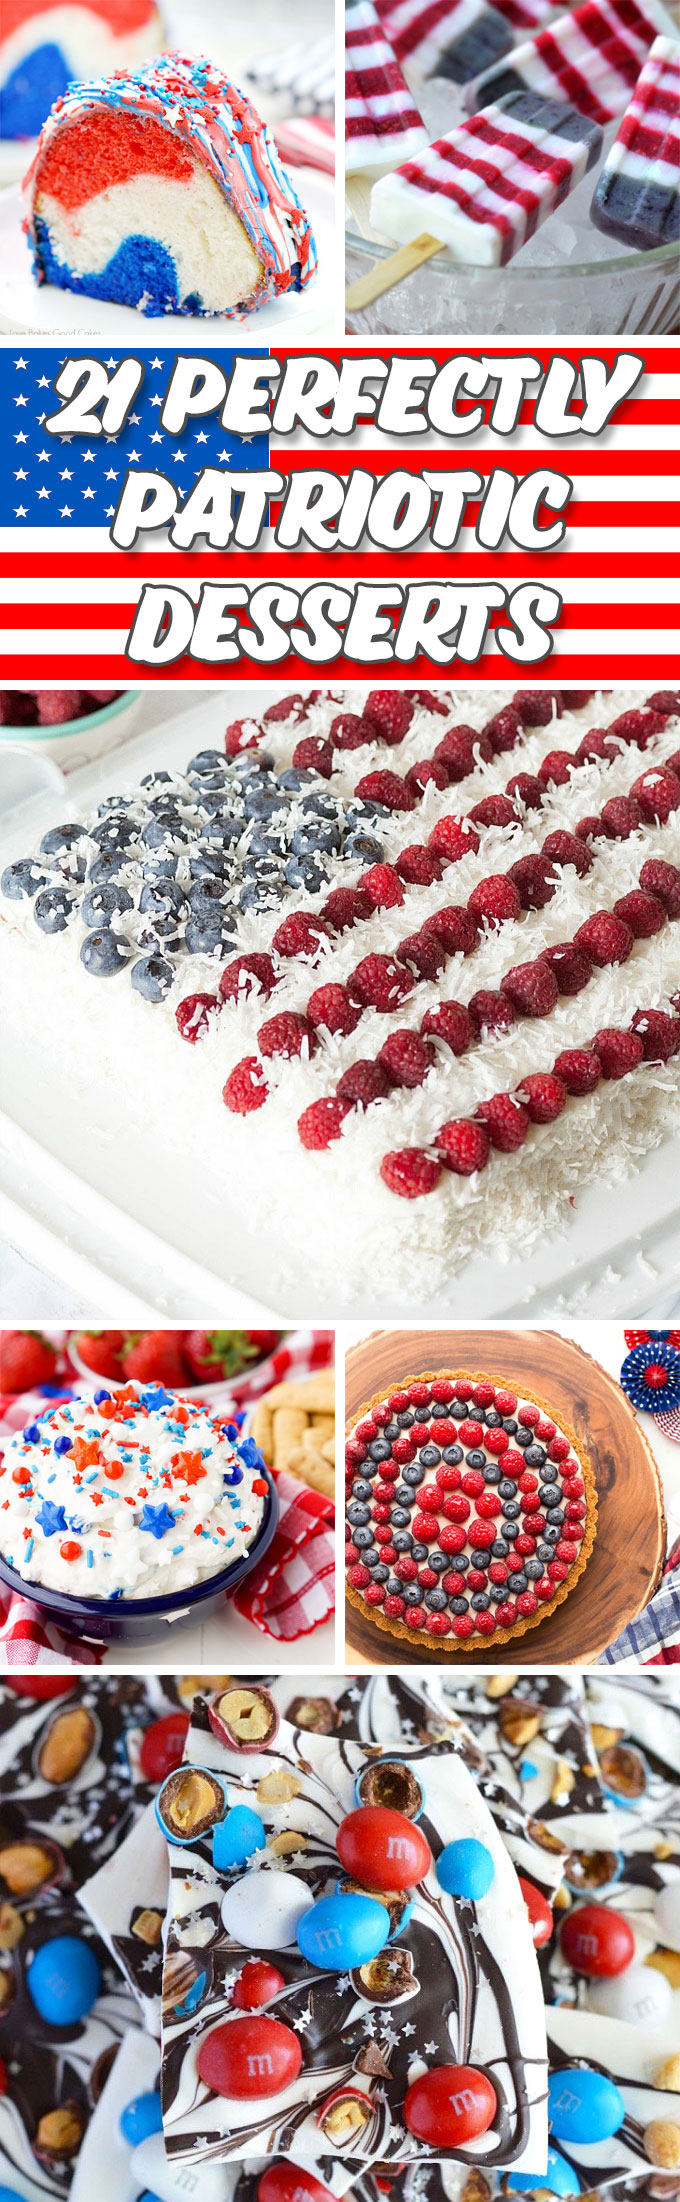 21 Perfectly Patriotic Desserts by Sweet2EatBaking.com | Celebrate Independence Day with these delicious red, white and blue desserts for your 4th July celebrations